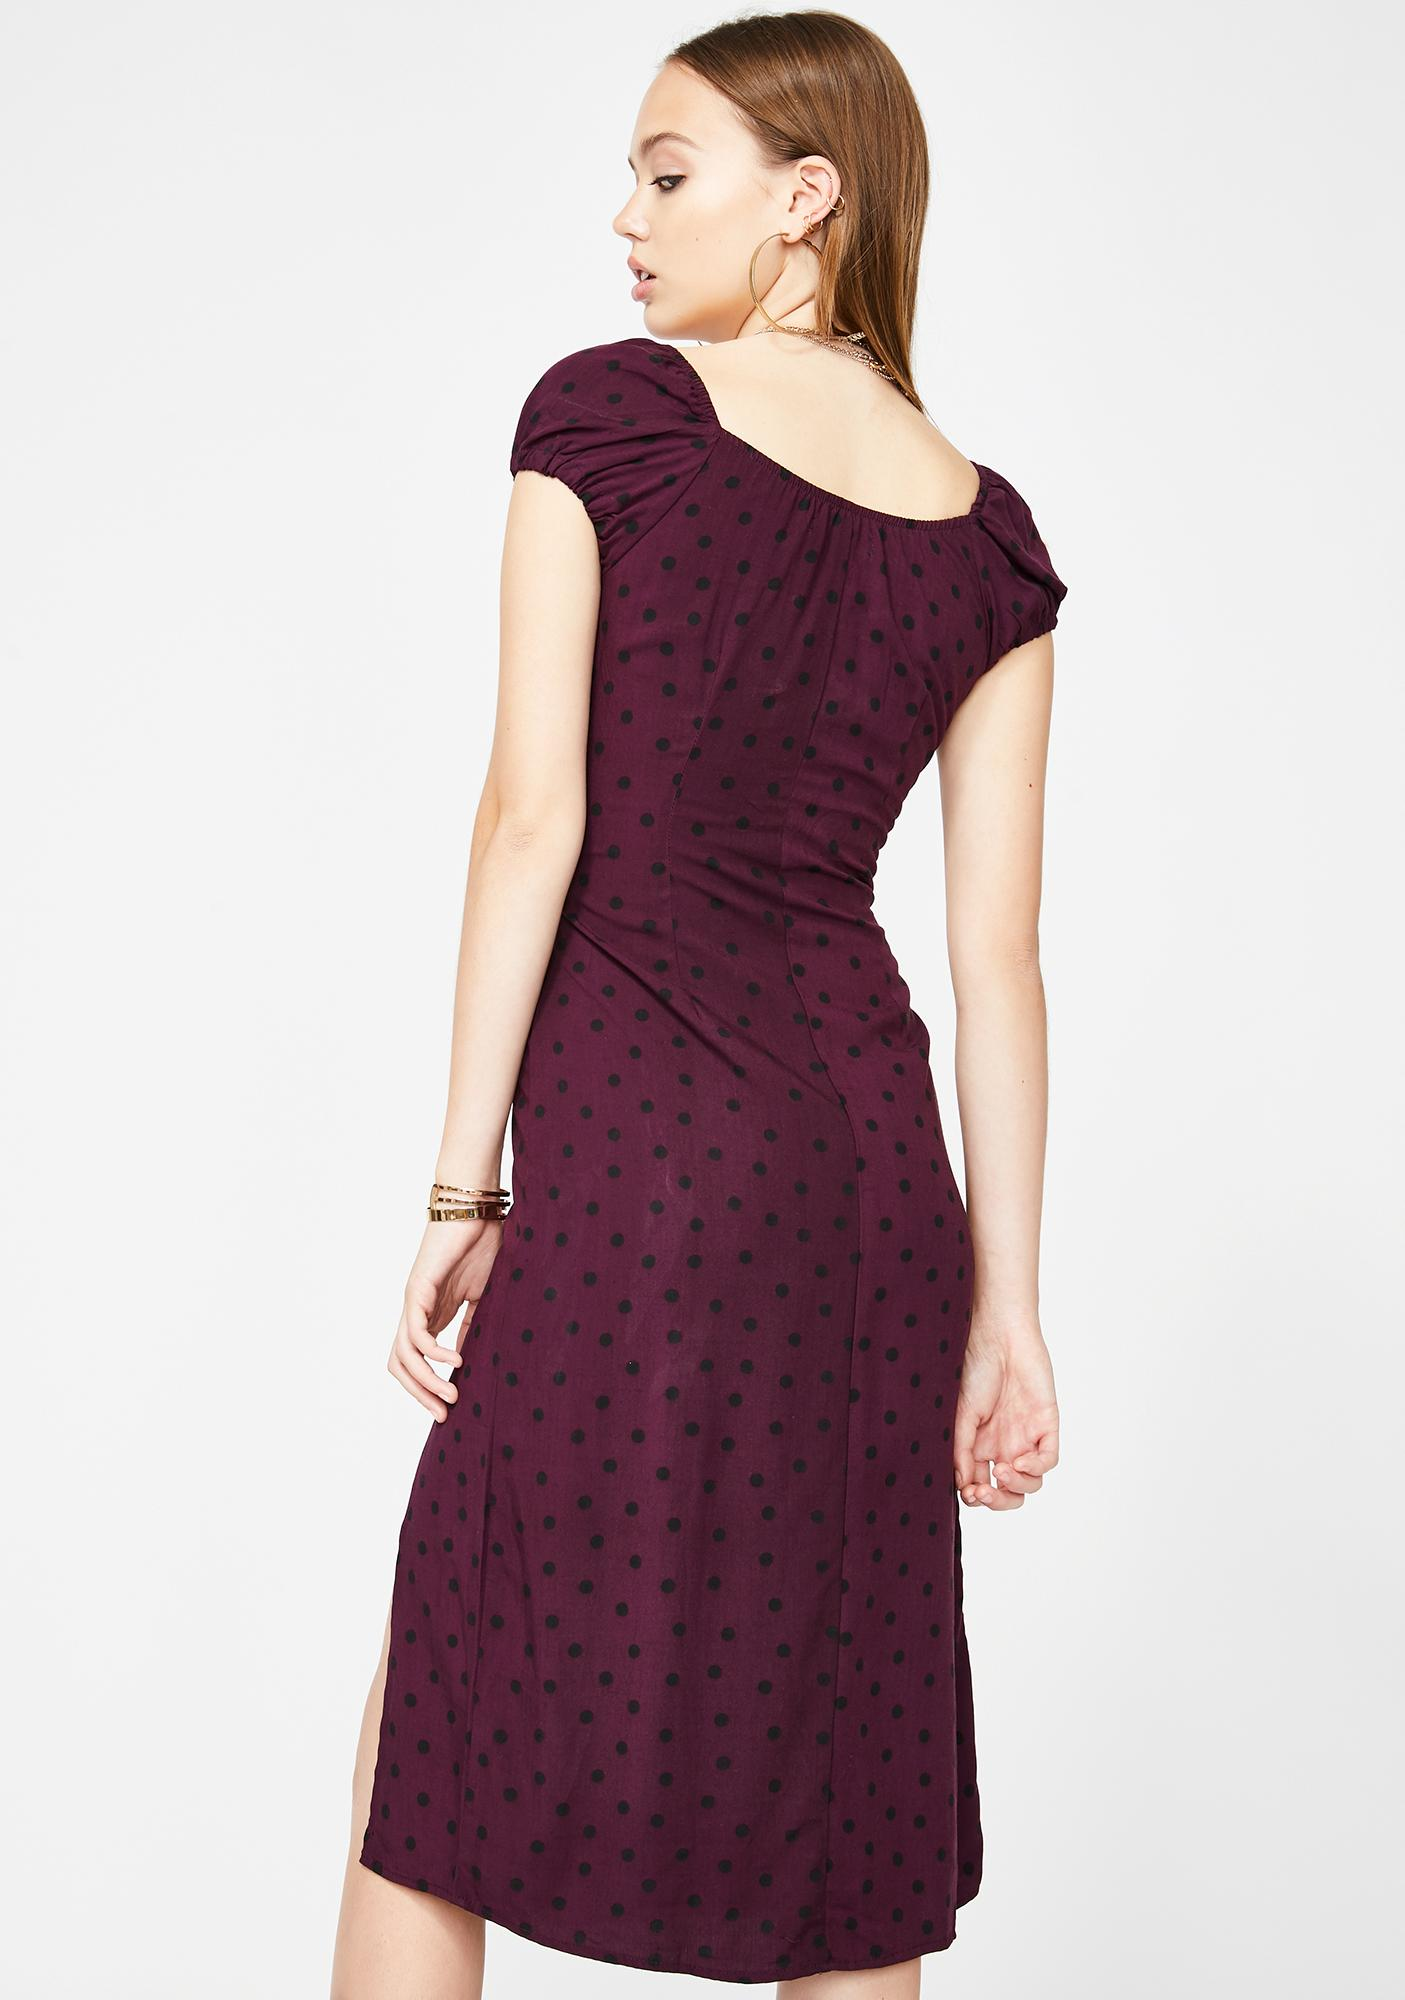 Motel Wine Milla Midi Dress